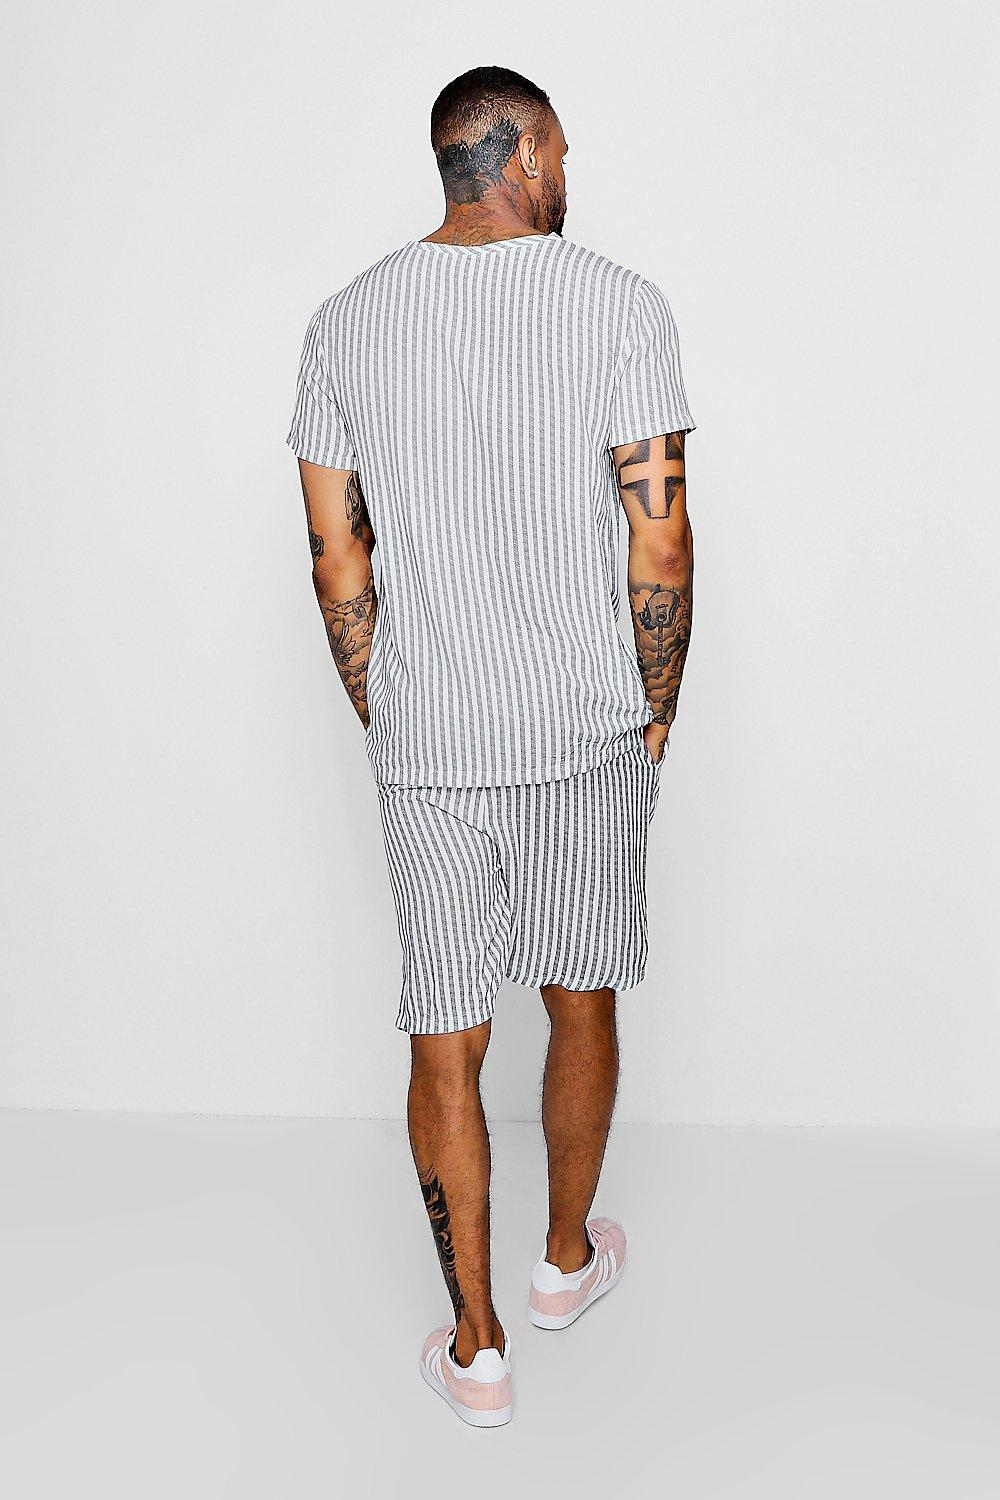 blue Woven Shirt Stripe T Vertical qTXYwq